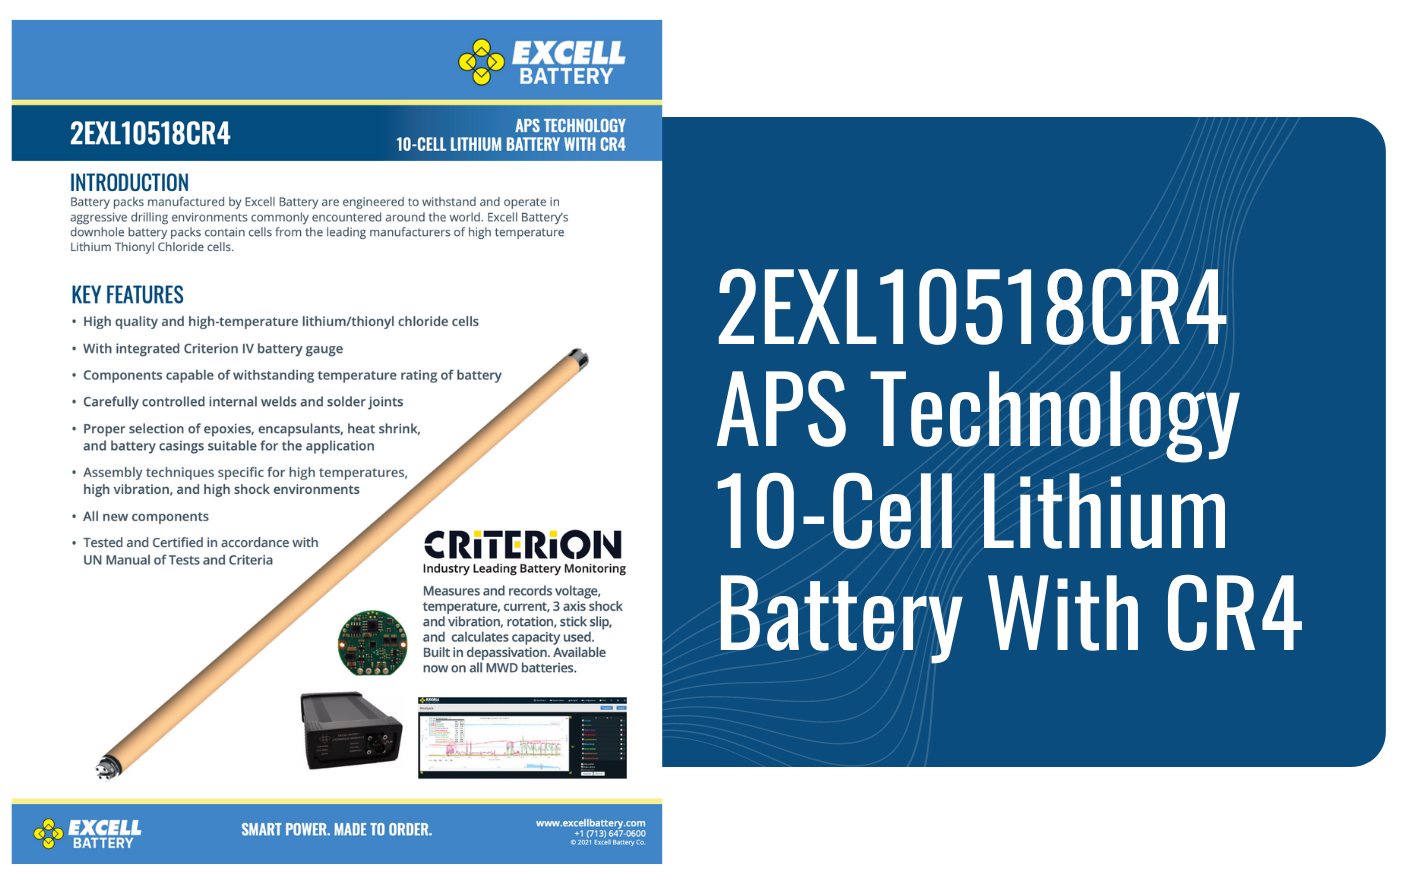 2EXL10518CR4 APS Technology 10-Cell Lithium Battery With CR4